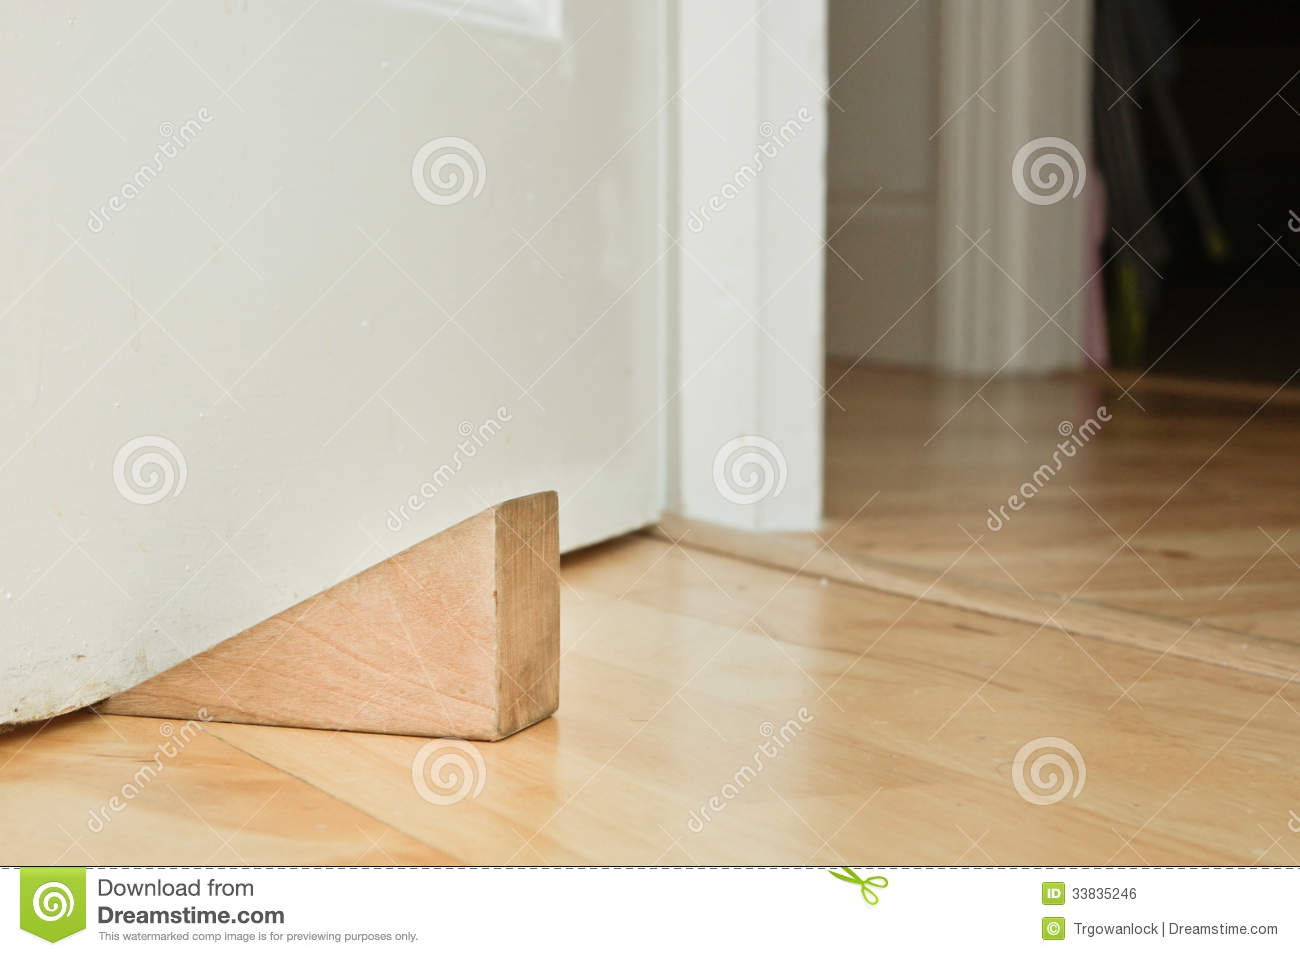 Door Stopper Royalty Free Stock Image - Image: 33835246